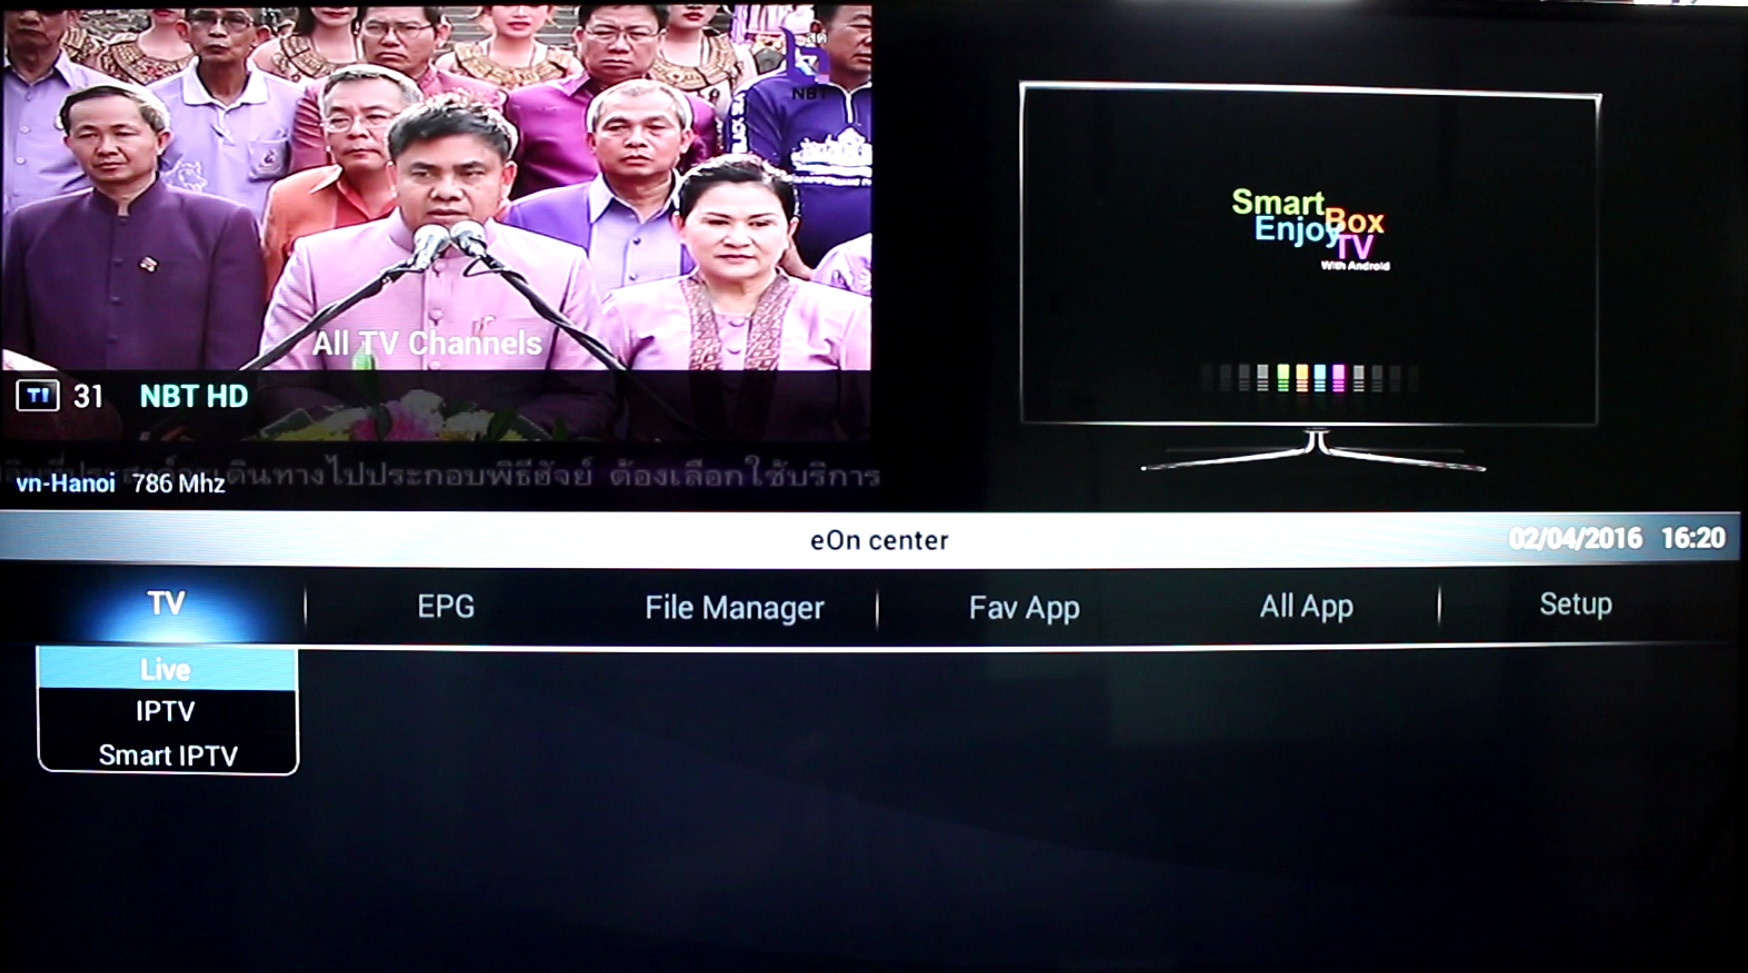 Review of U4 Quad Hybrid Android Set-top box with DVB-T2/C